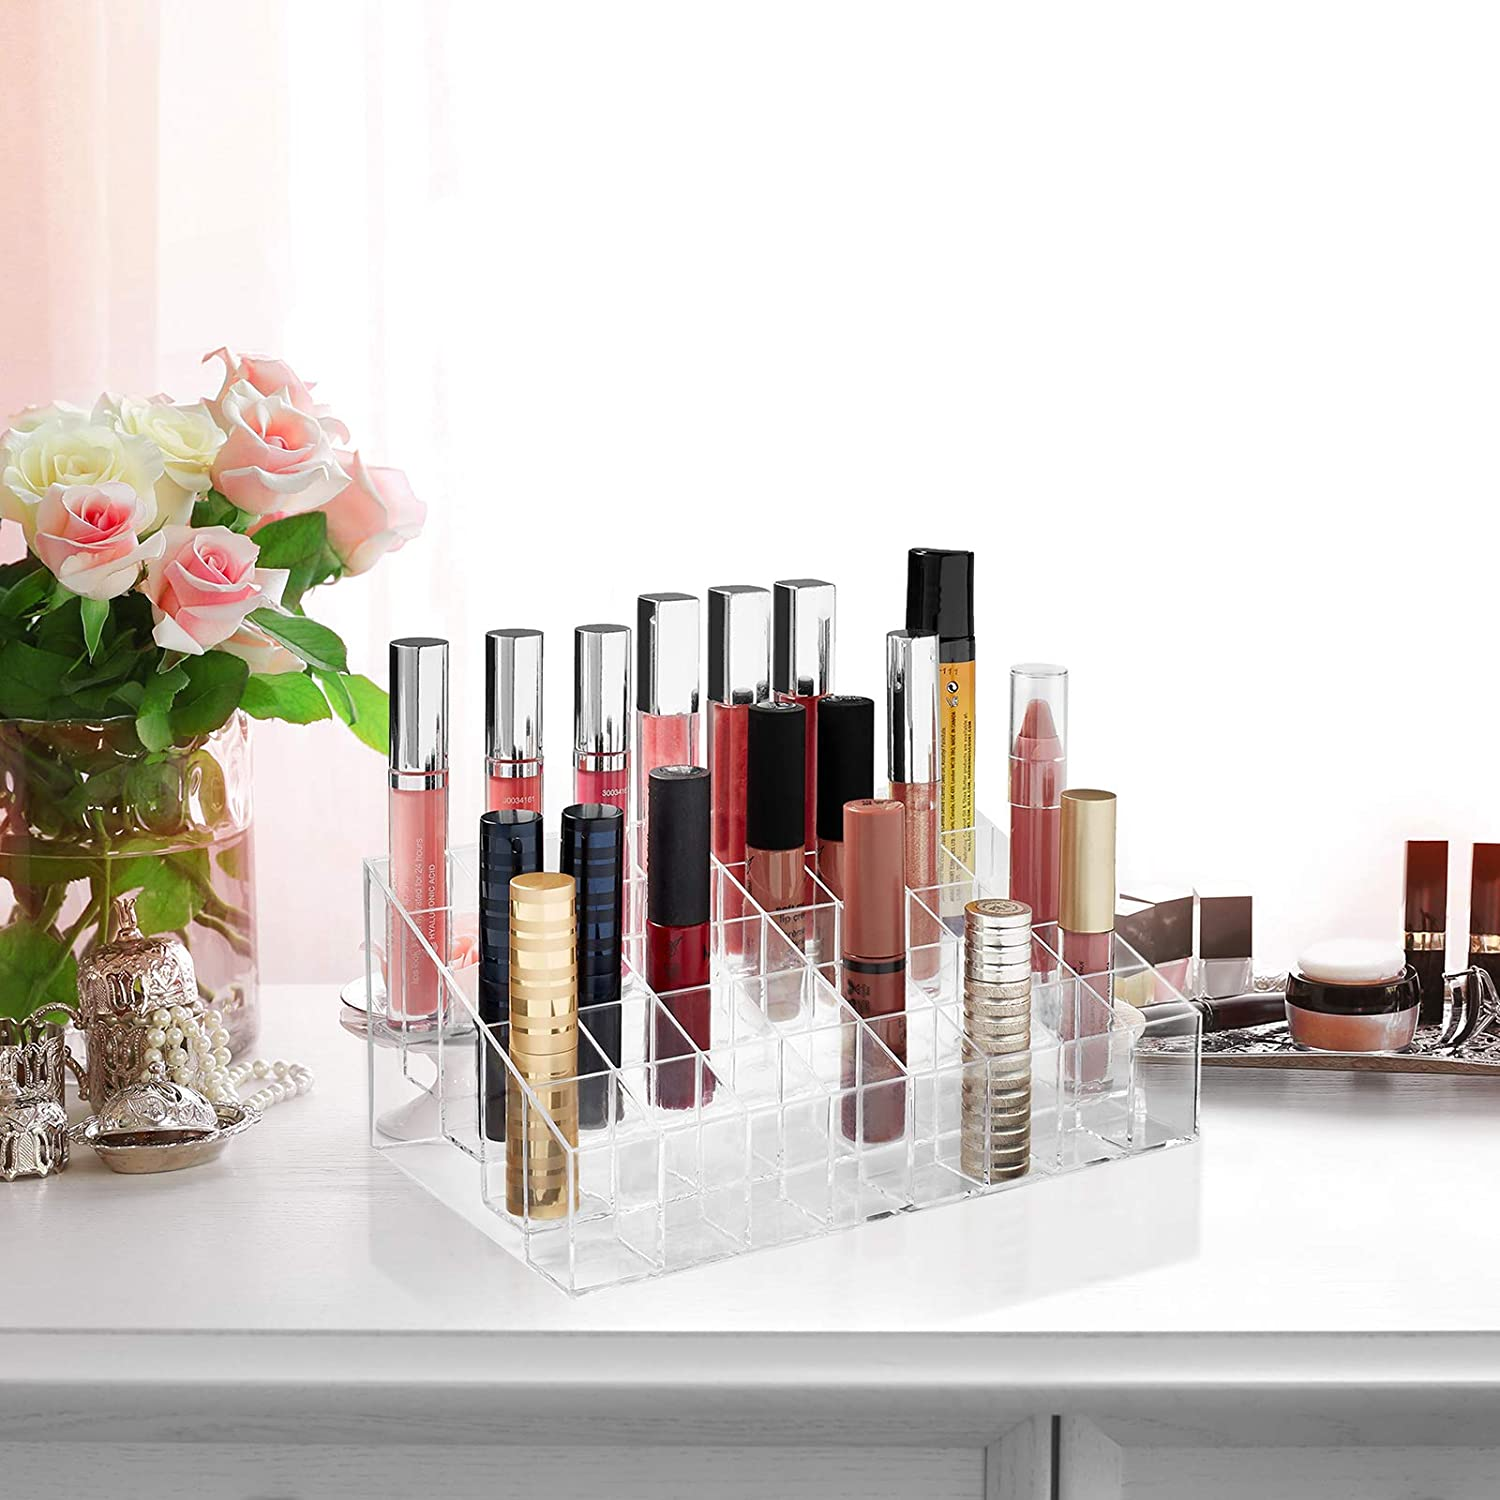 Casafield 40 Slot Acrylic Lipstick & Makeup Organizer - Cosmetic Display Case - Clear: Home & Kitchen